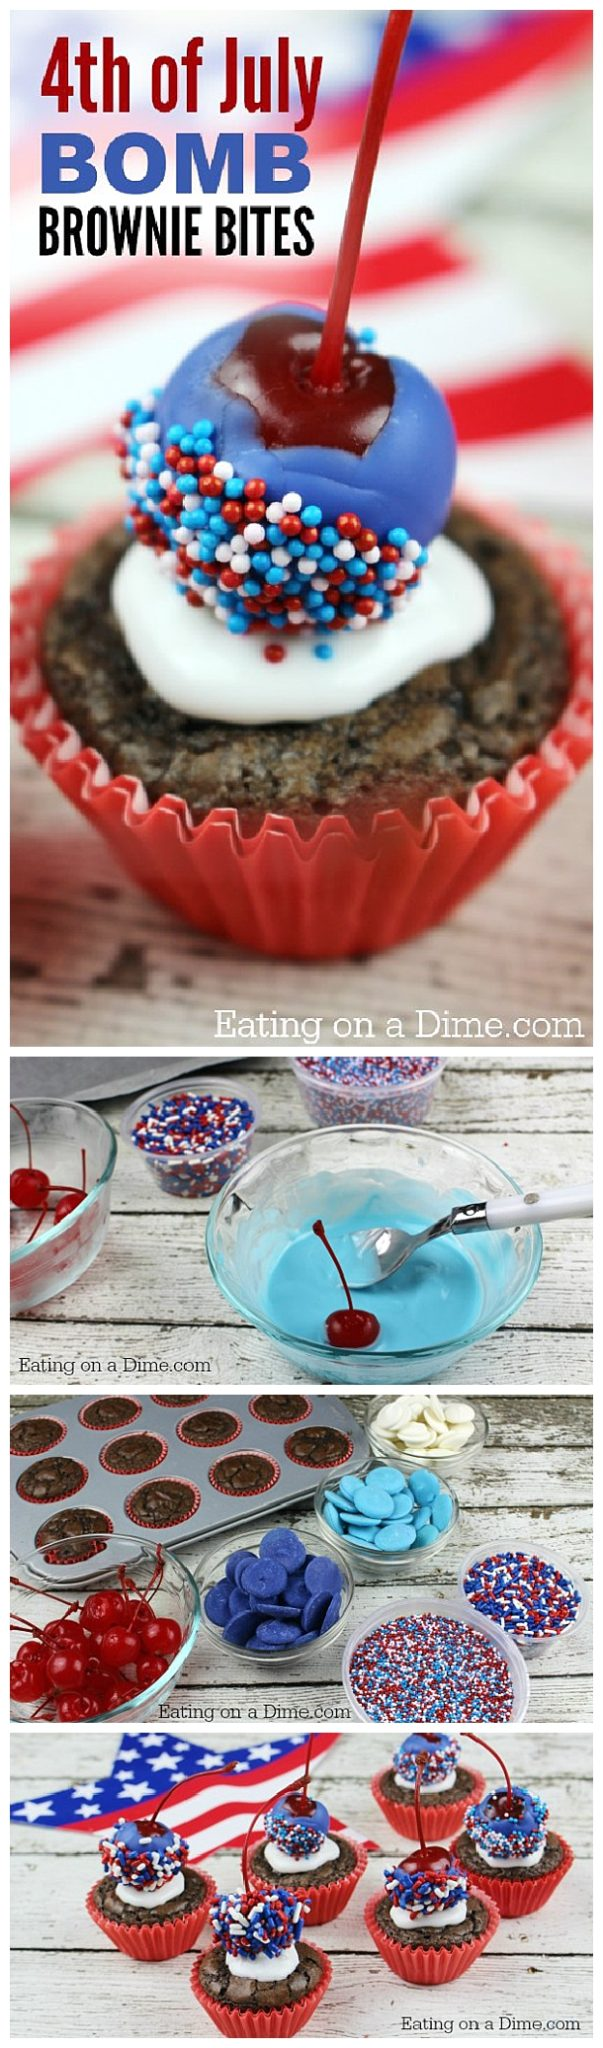 4th of July Brownie Bombs Patriotic Dessert Treats Recipe and Tutorial - Explosively YUMMY with a Cherry on Top! via Eating on a Dime